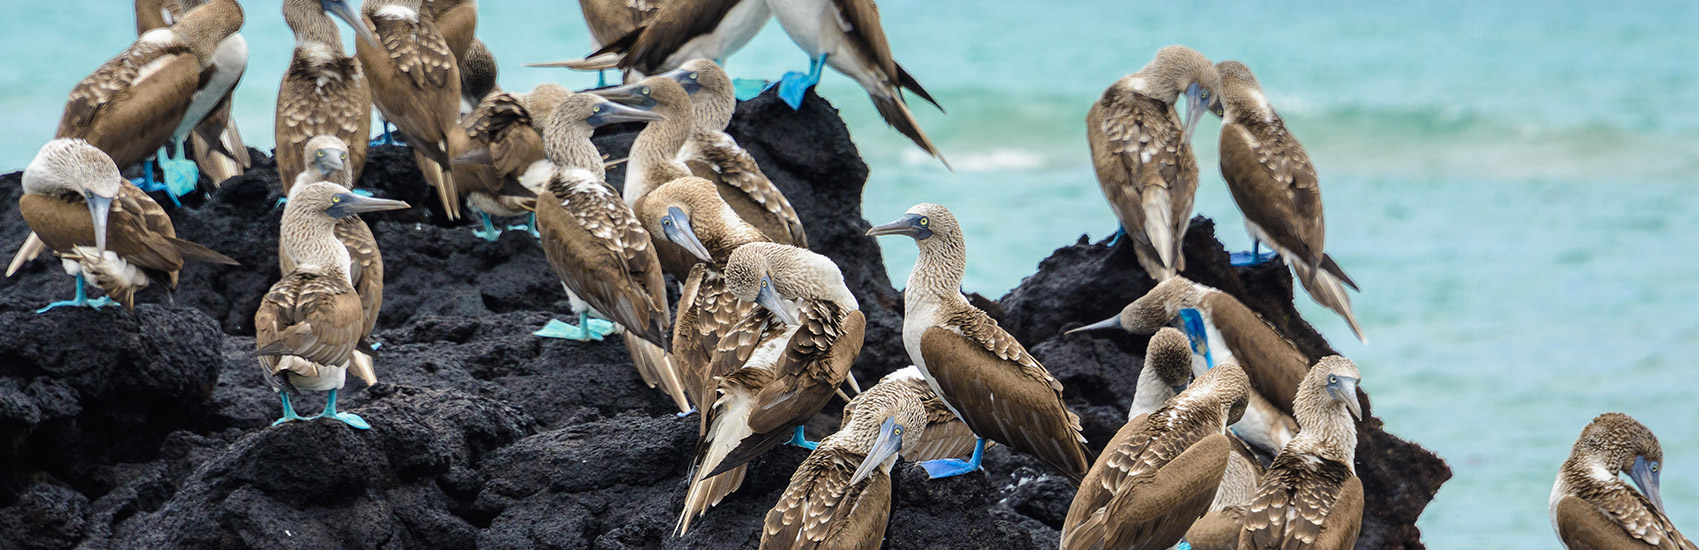 When to explore the Galapagos Islands 3